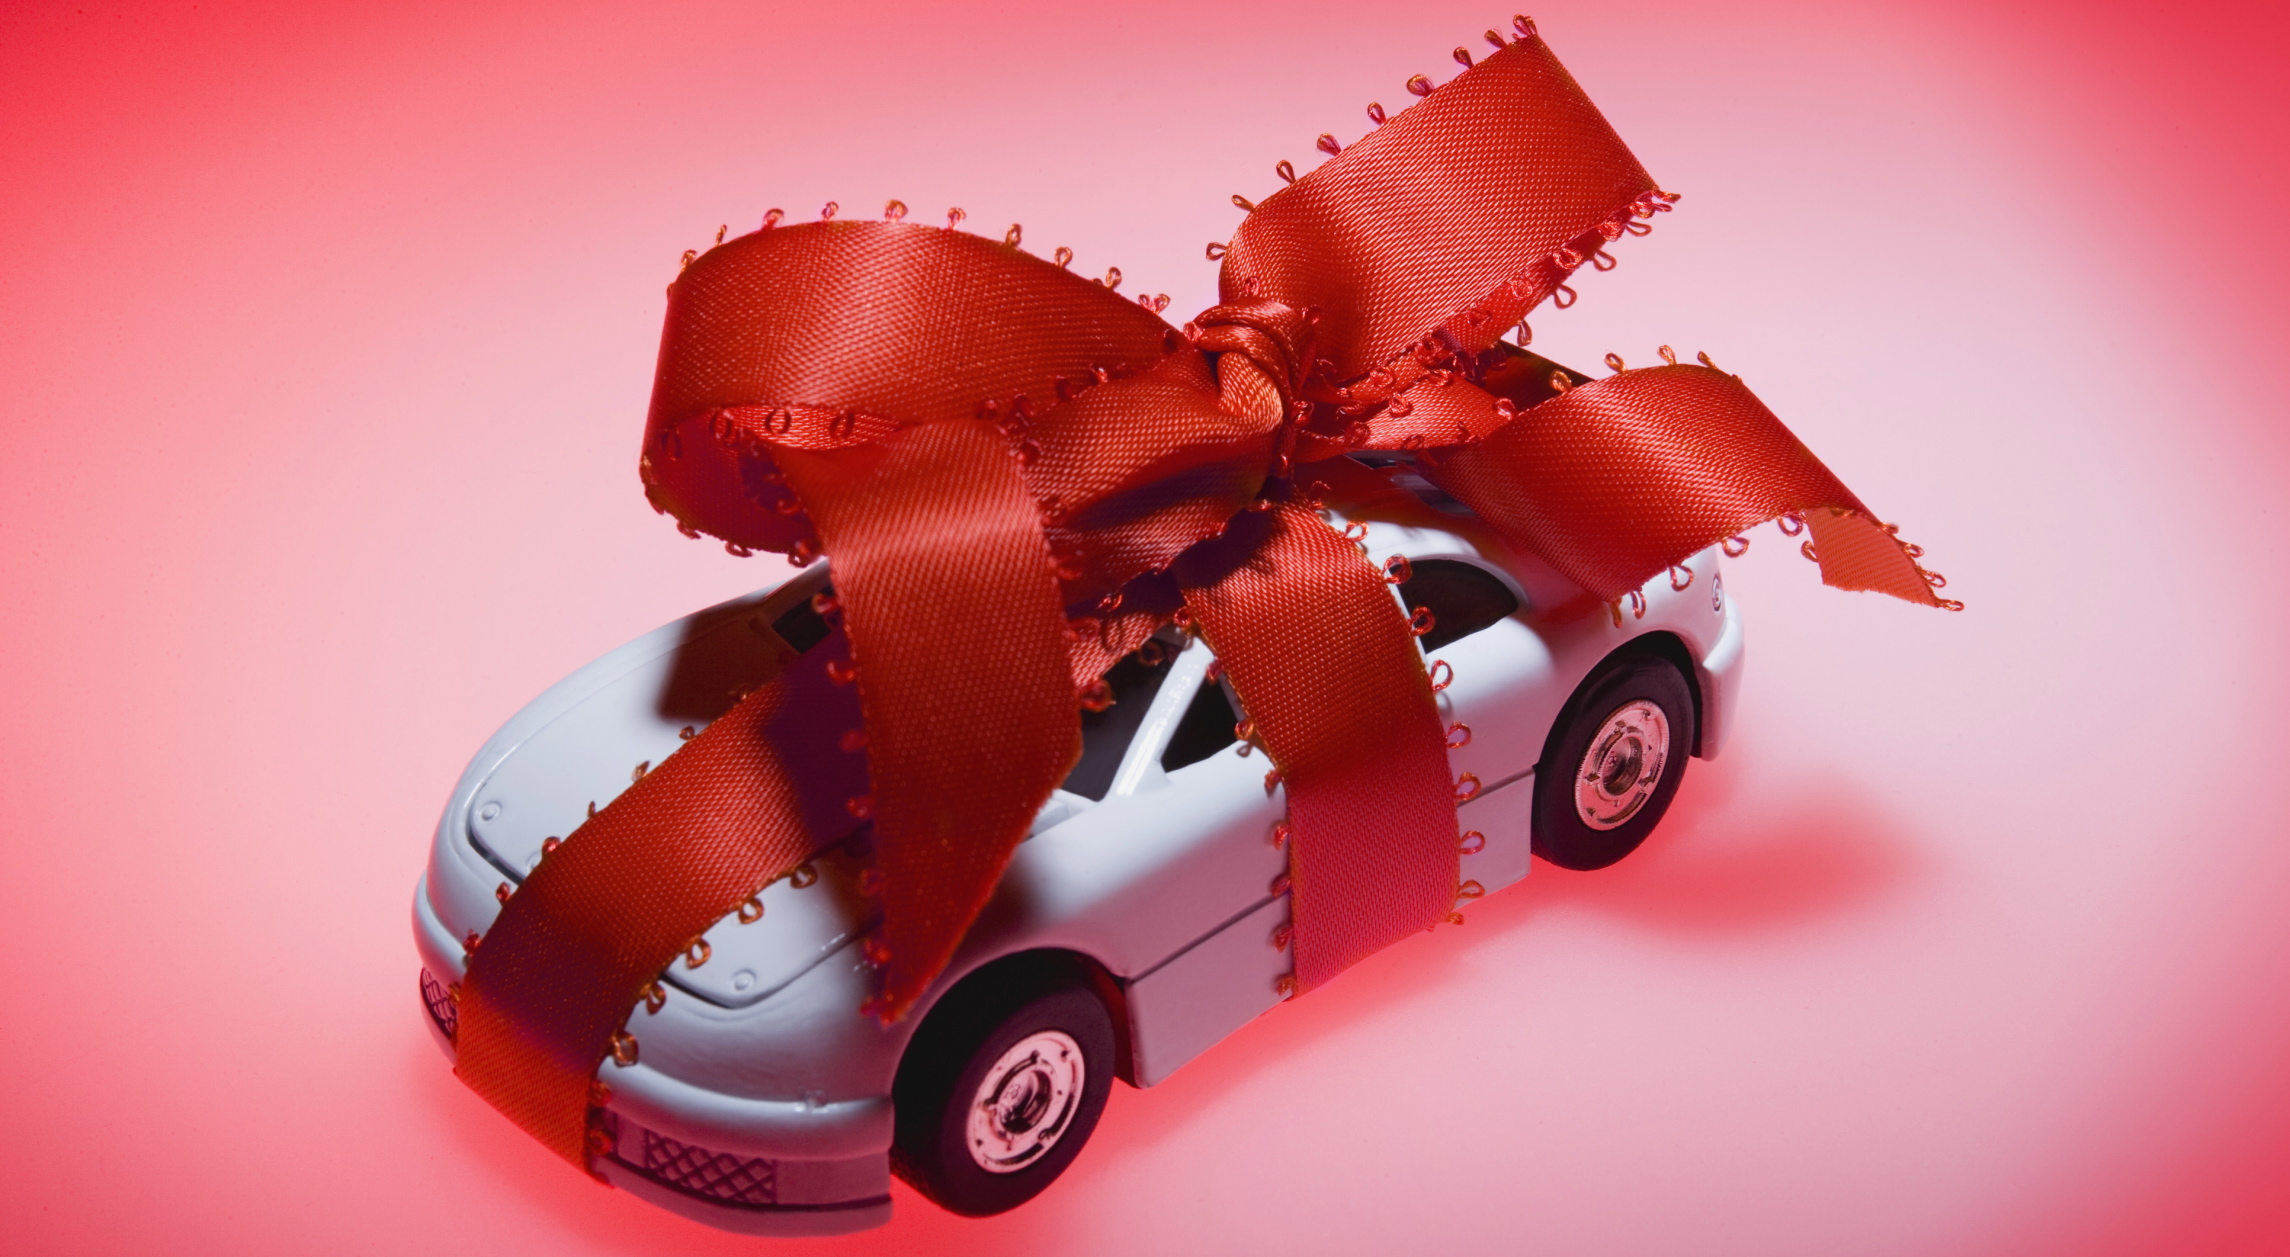 Innovative Christmas Gift Ideas: I Brake For Elves: The Top 10 Innovative New Holiday Gift